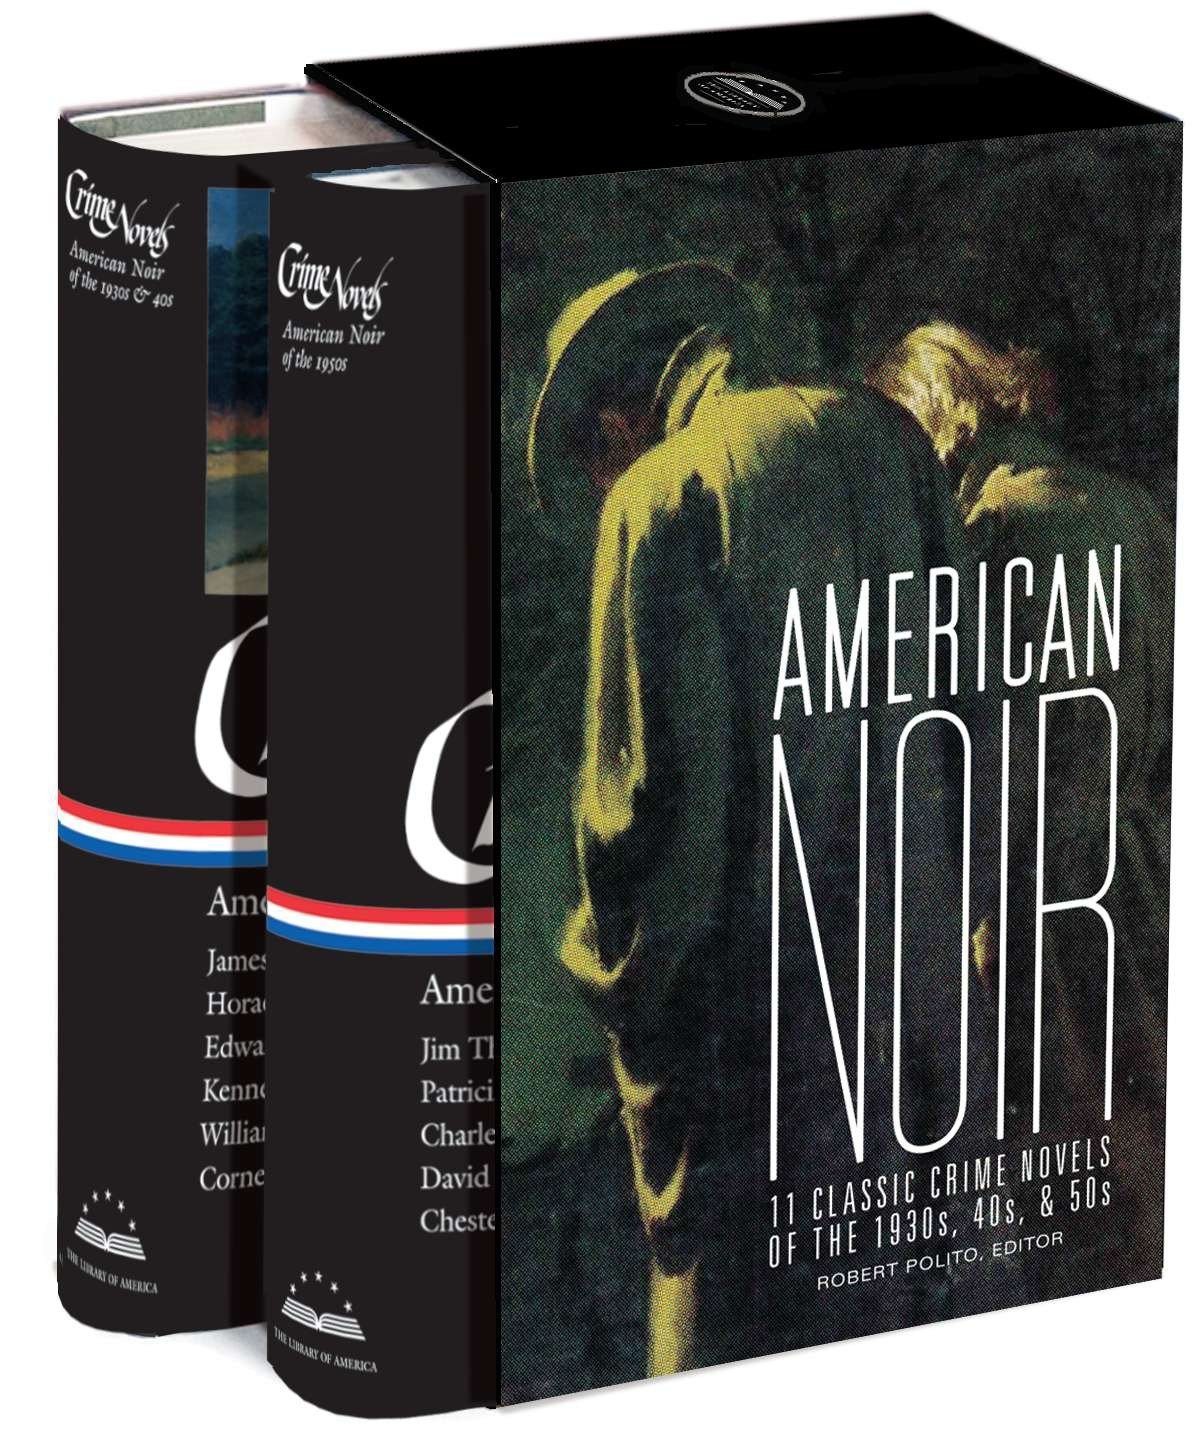 American Noir: 11 Classic Crime Novels of the 1930s, 40s, & 50s: A Library of America Boxed Set by LIBRARY OF AMERICA